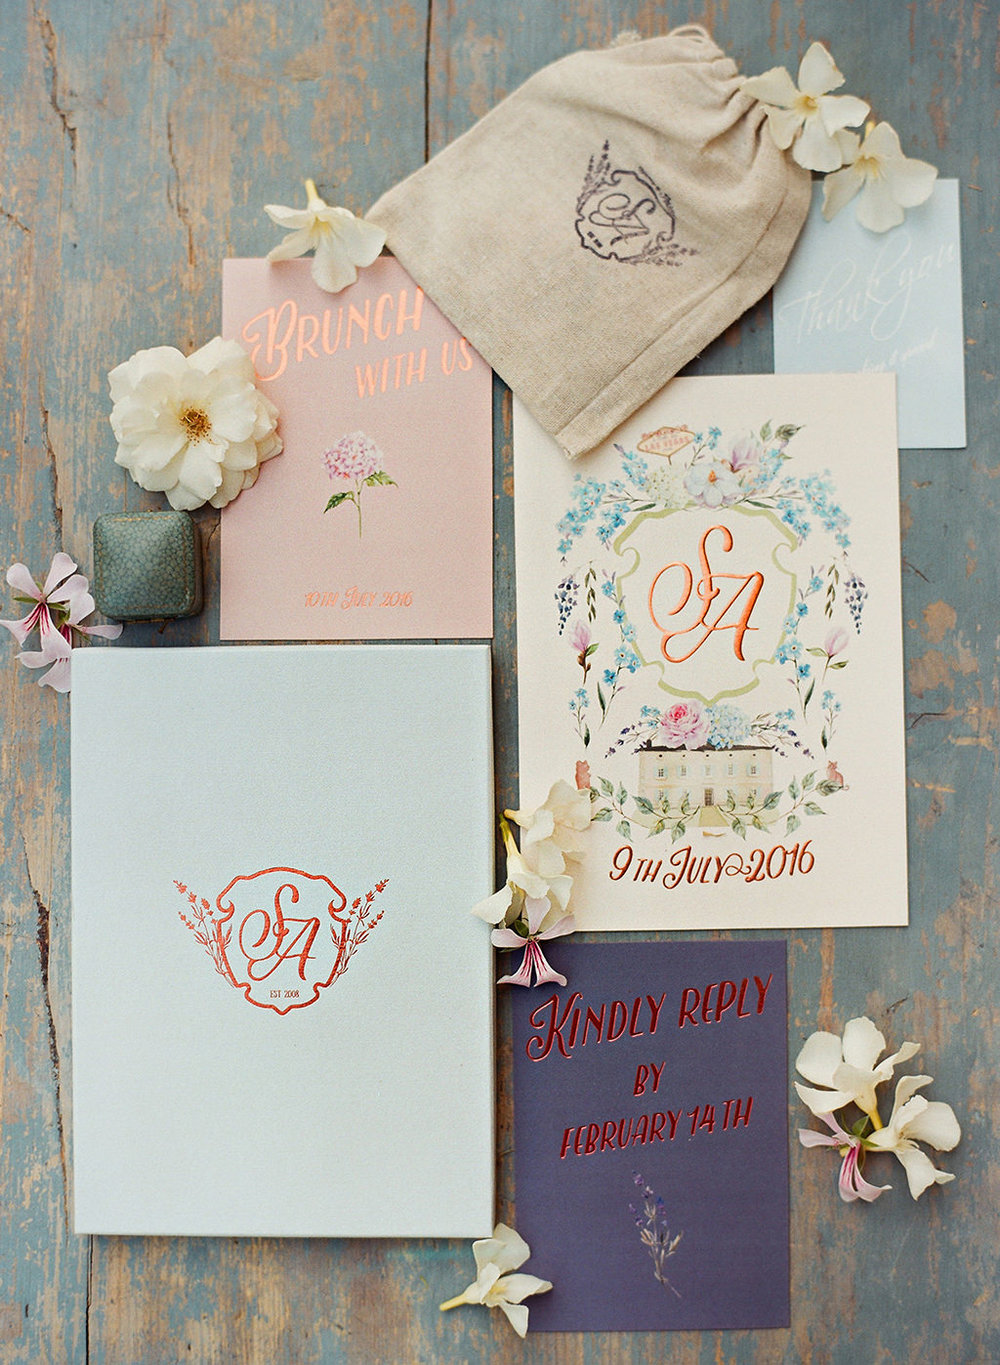 SadafMirzaei_WeddingStationery12.jpg